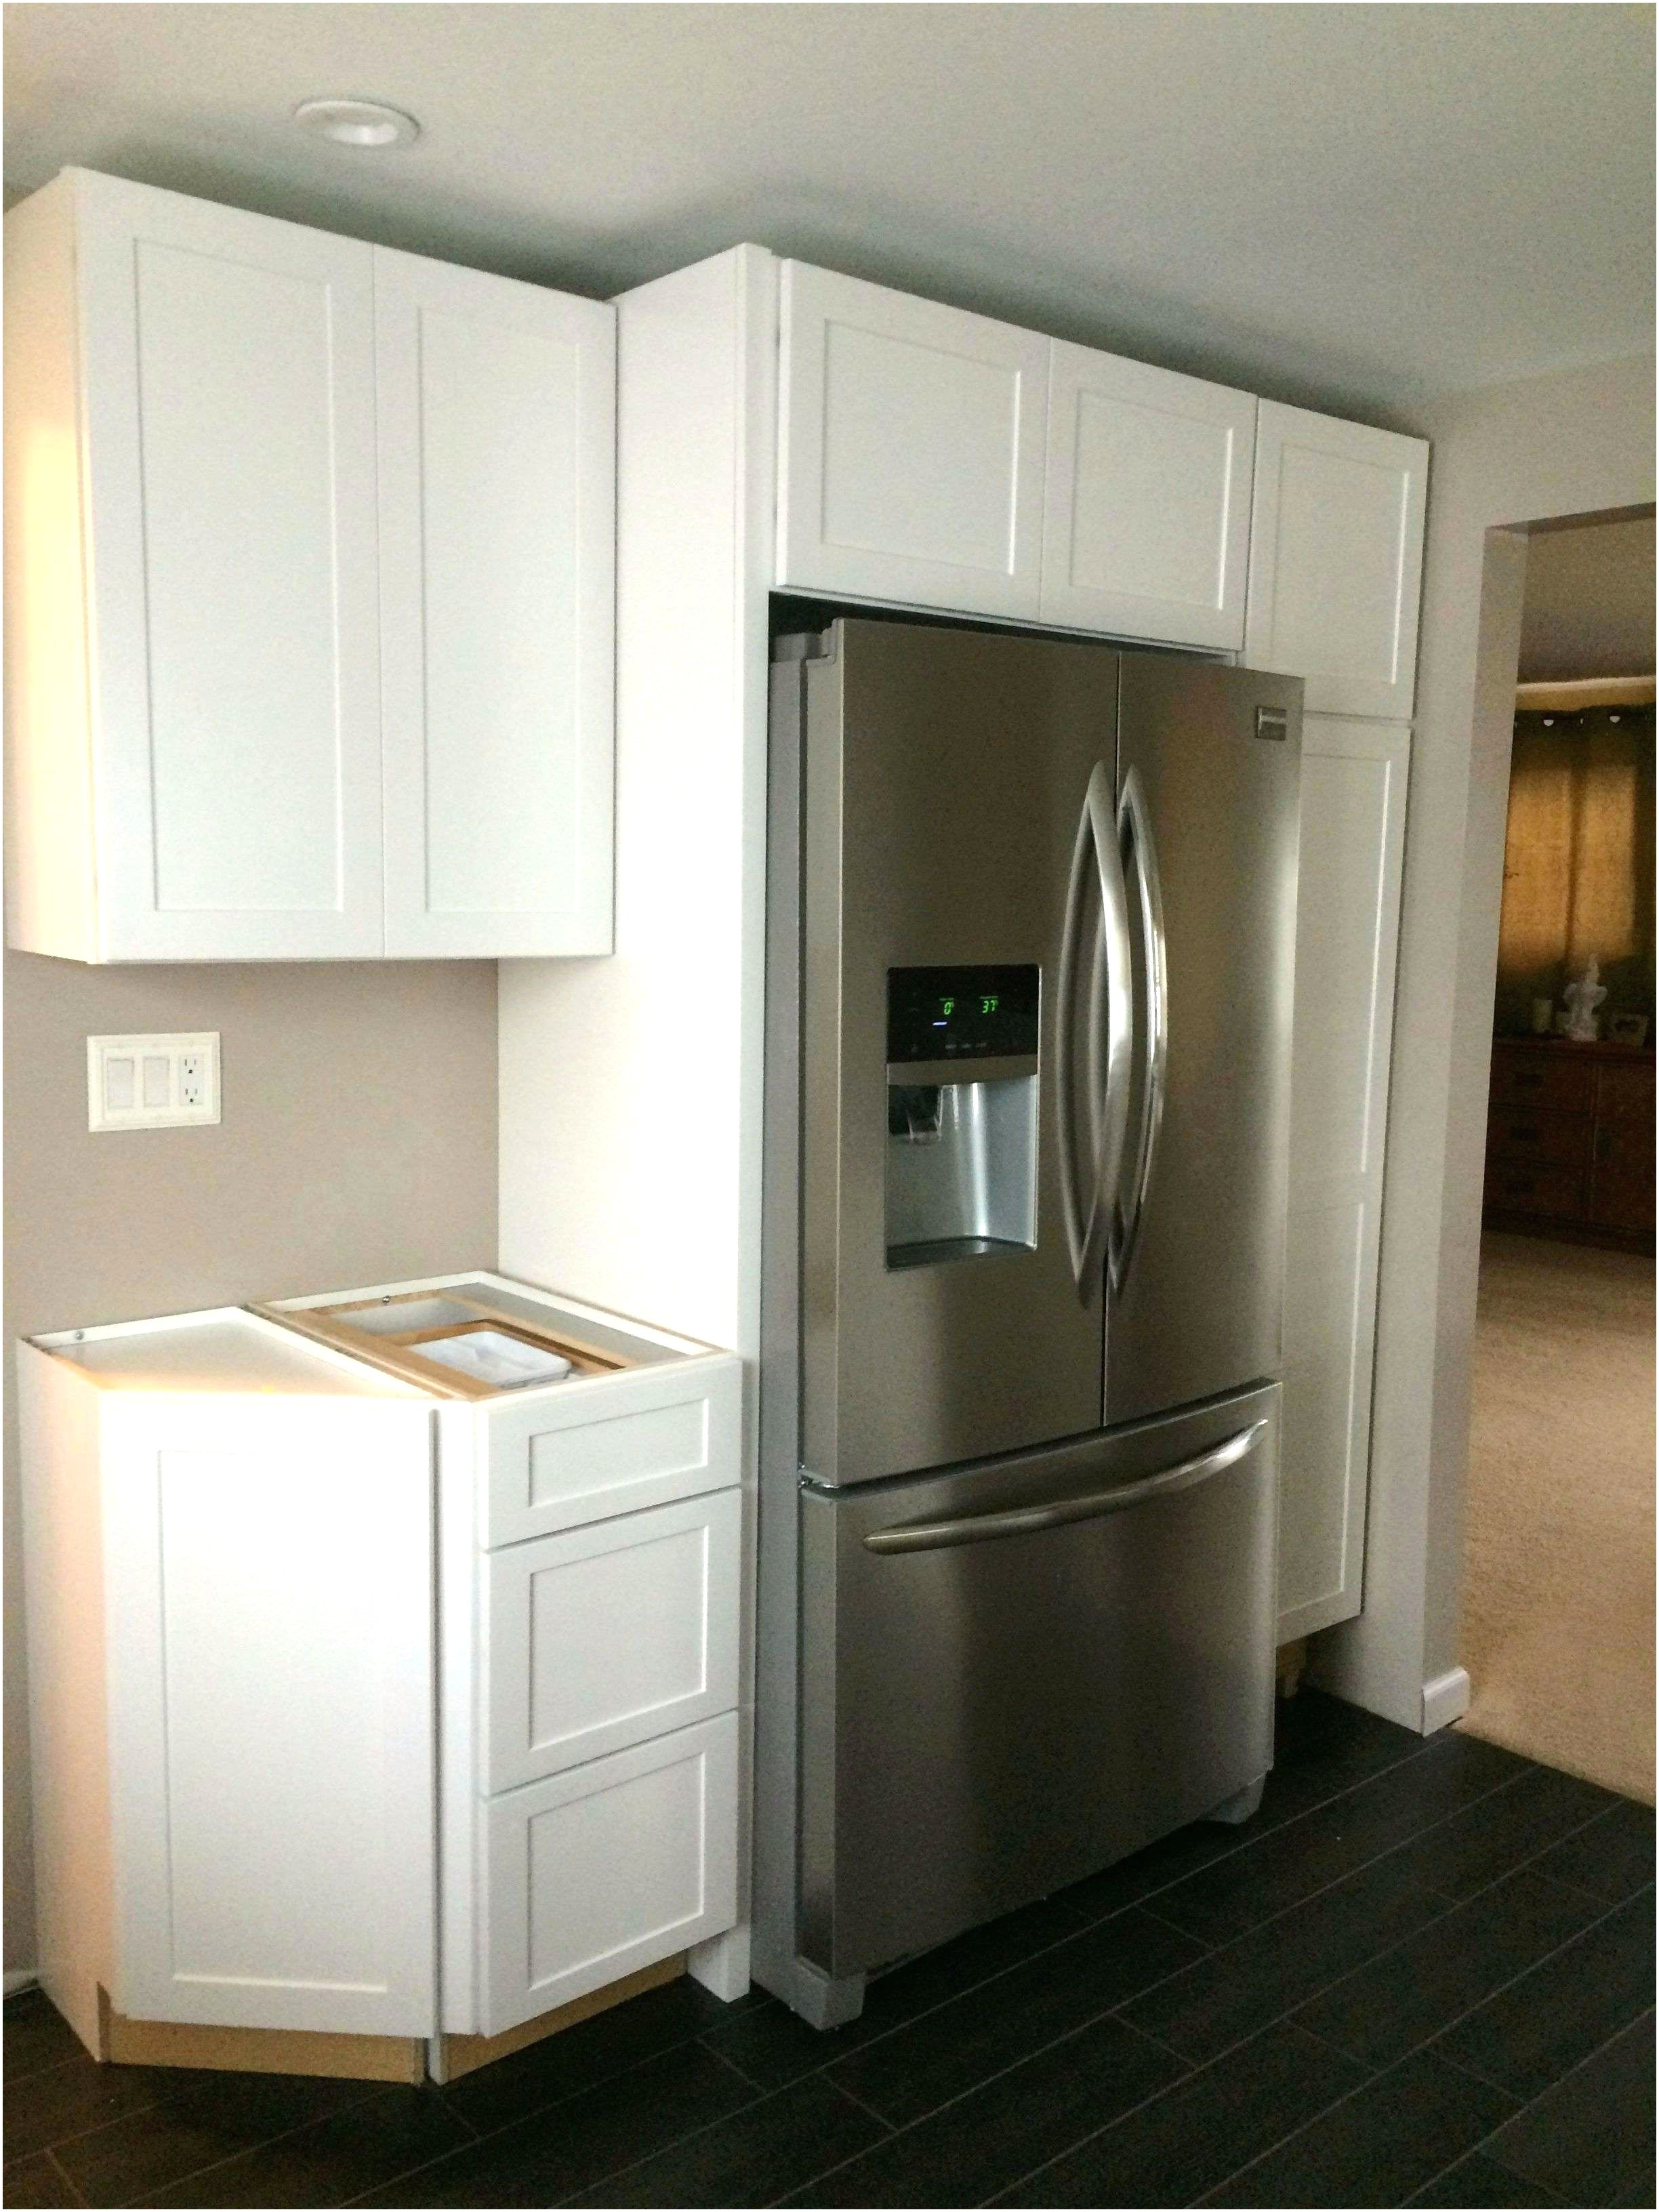 exquisite kitchen cabinet stores in samples kitchen cabinet doors from kitchen cabinet warehouse image source smapin com